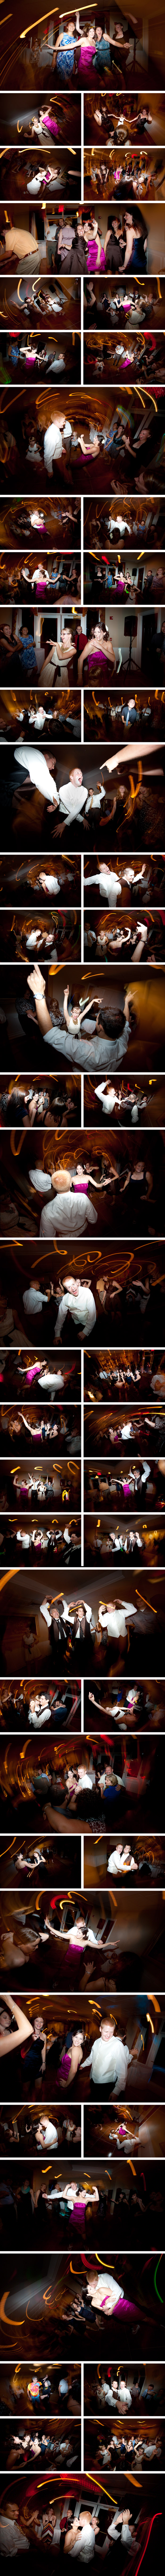 dancing1 Jessica + Sam | Clemmons, NC Wedding